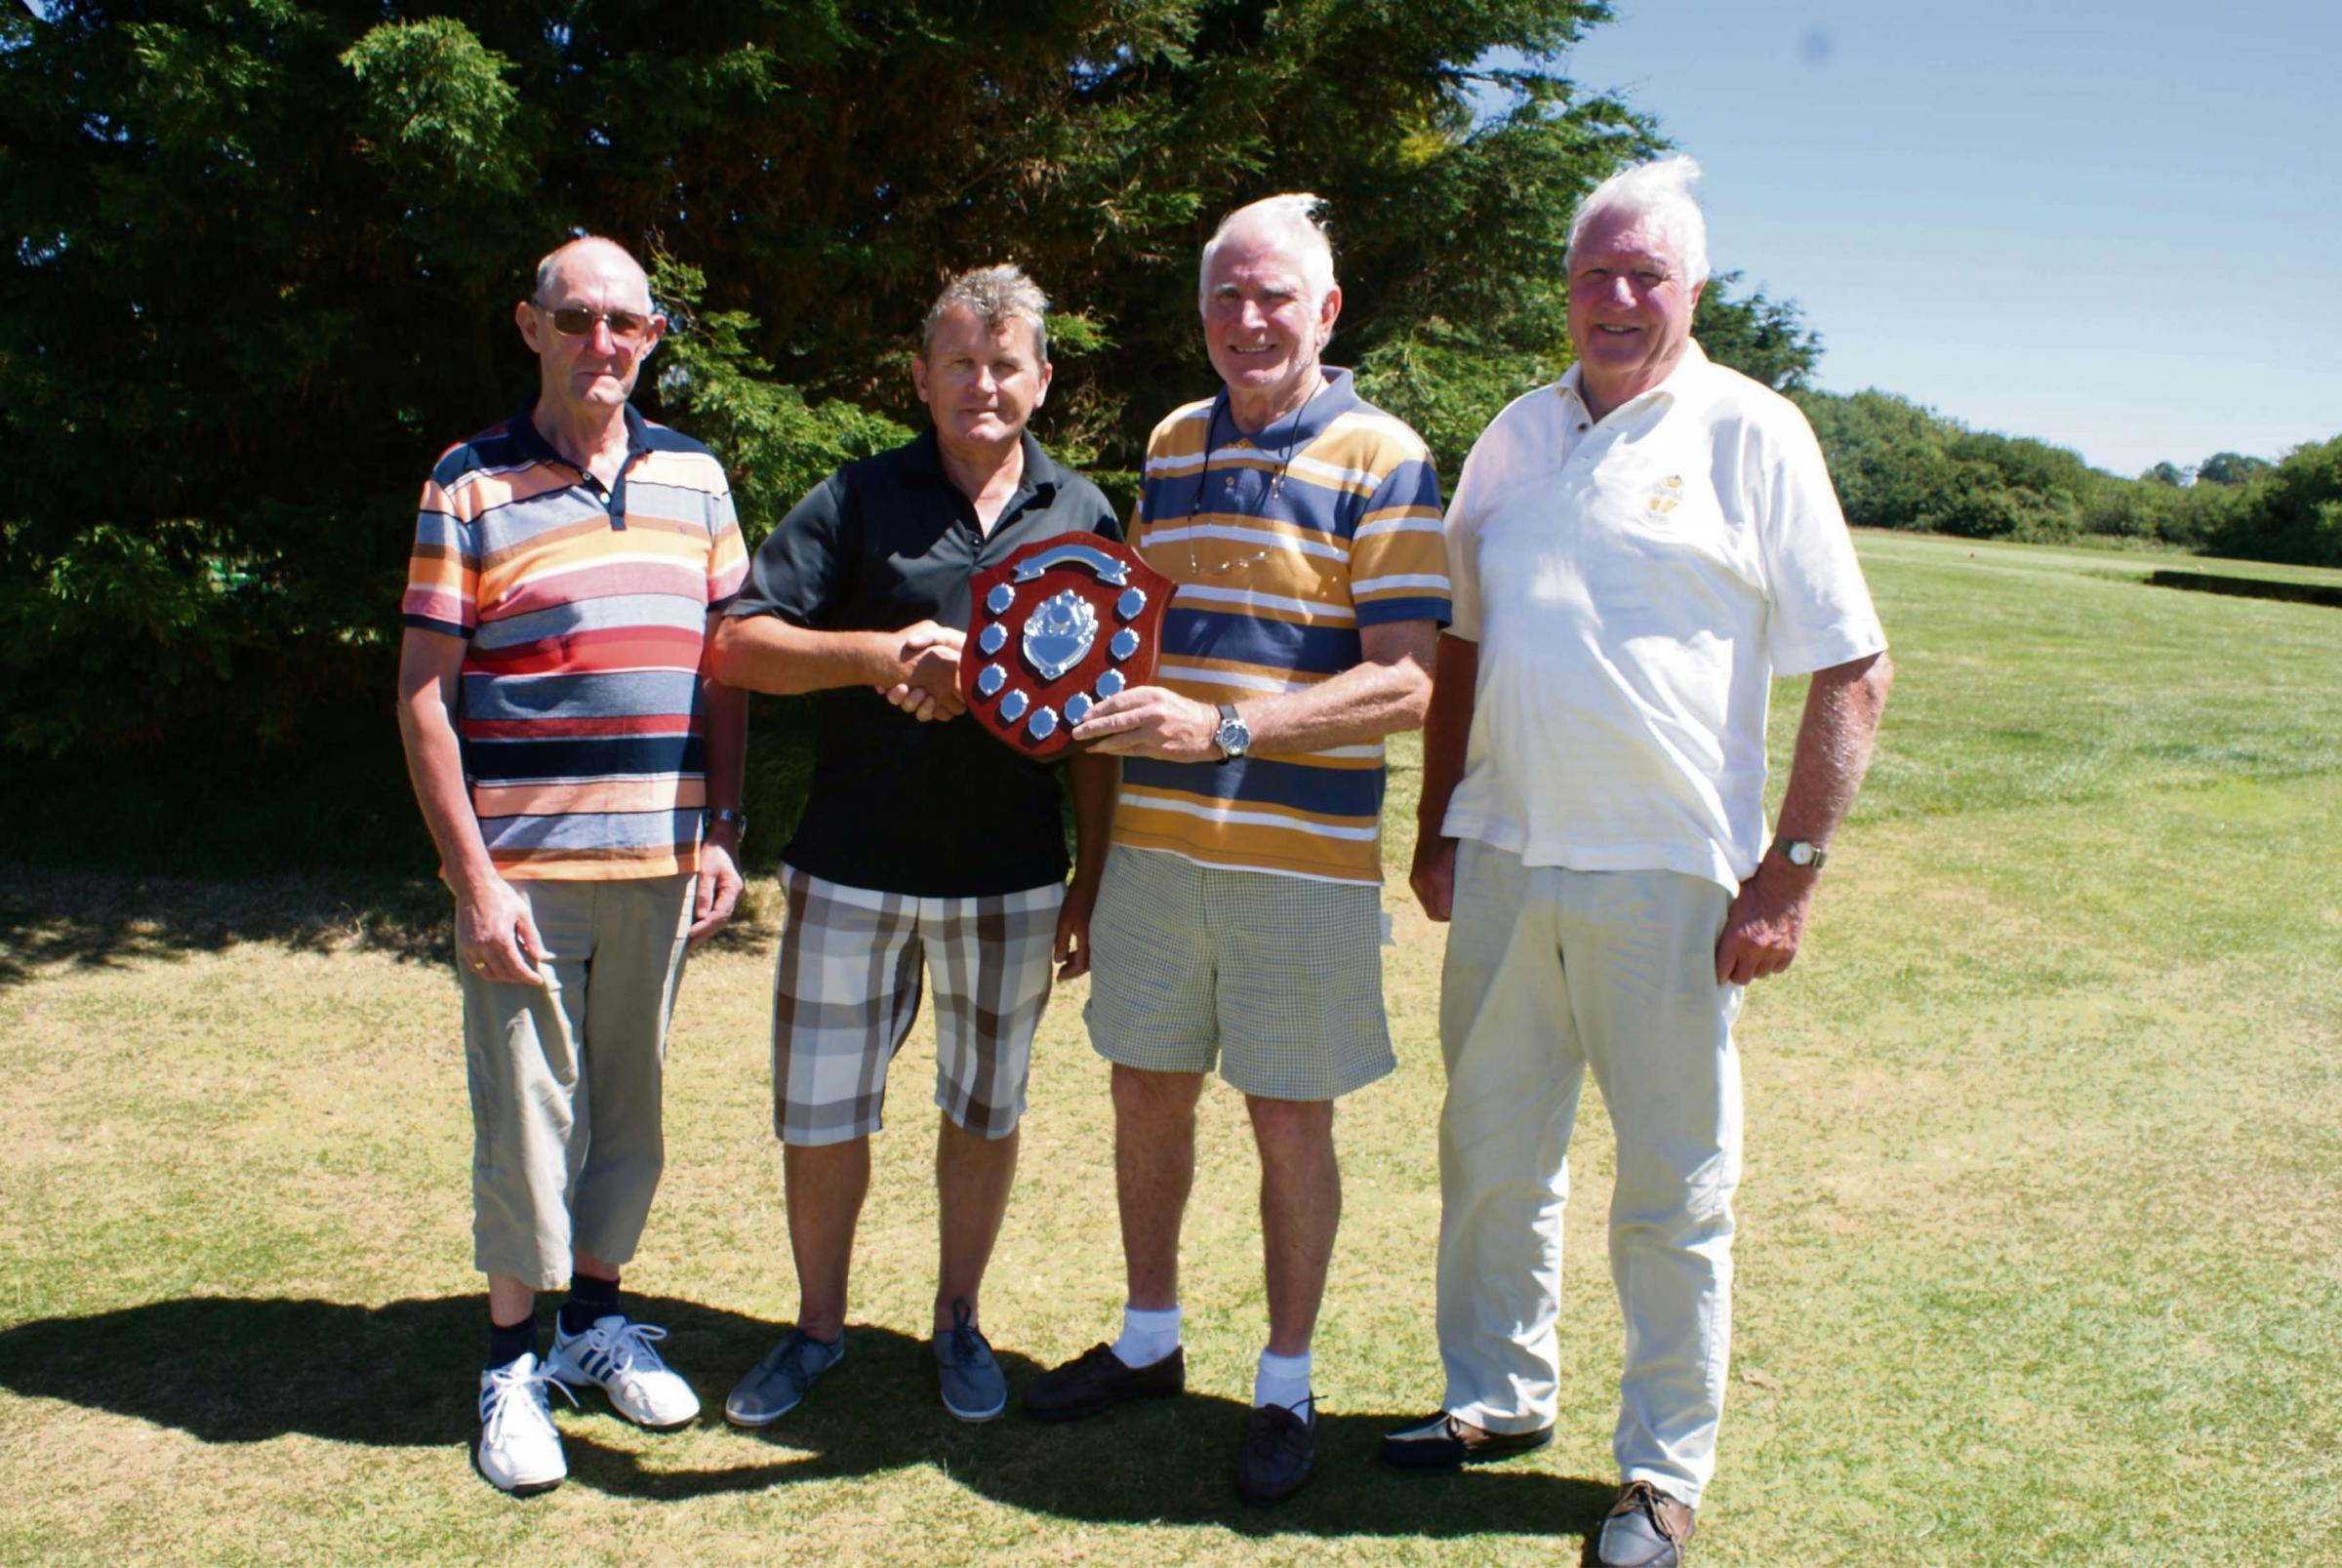 SENIORS TROPHY: Hylton John Seniors Trophy - Seniors' Captain Bob Stokoe with winner John McLean,  runners up Colin Rogers and Gordon Manwaring.    (7735501)